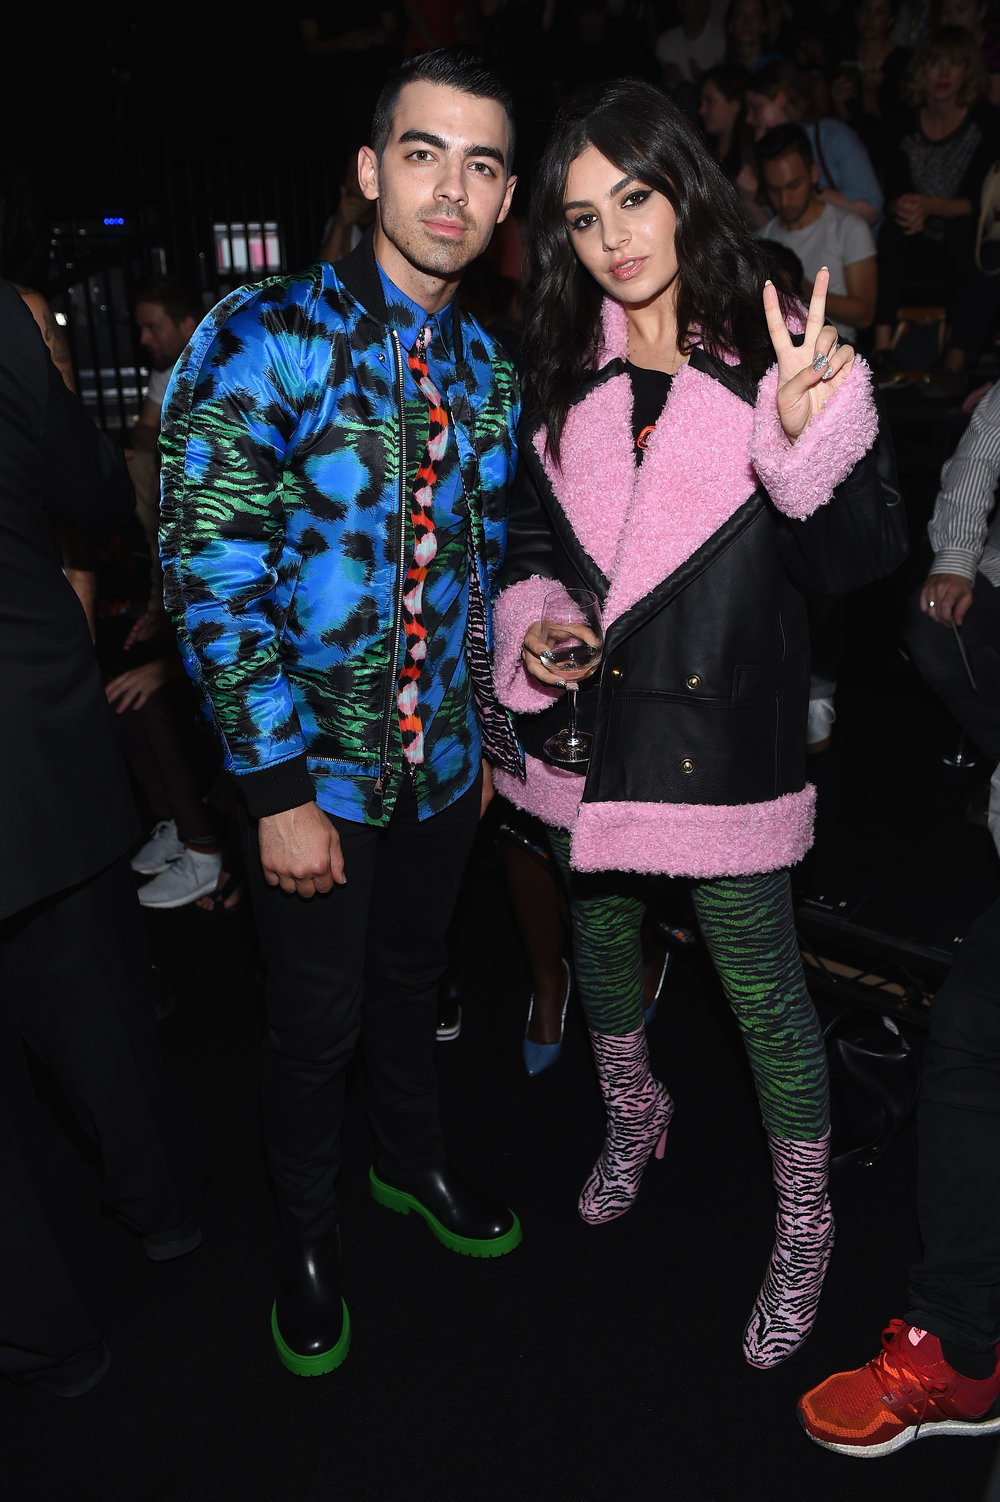 NEW YORK, NY - OCTOBER 19:  Joe Jonas and Charli XCX attend KENZO x H&M Launch Event Directed By Jean-Paul Goude'  at Pier 36 on October 19, 2016 in New York City.  (Photo by Dimitrios Kambouris/Getty Images for H&M)